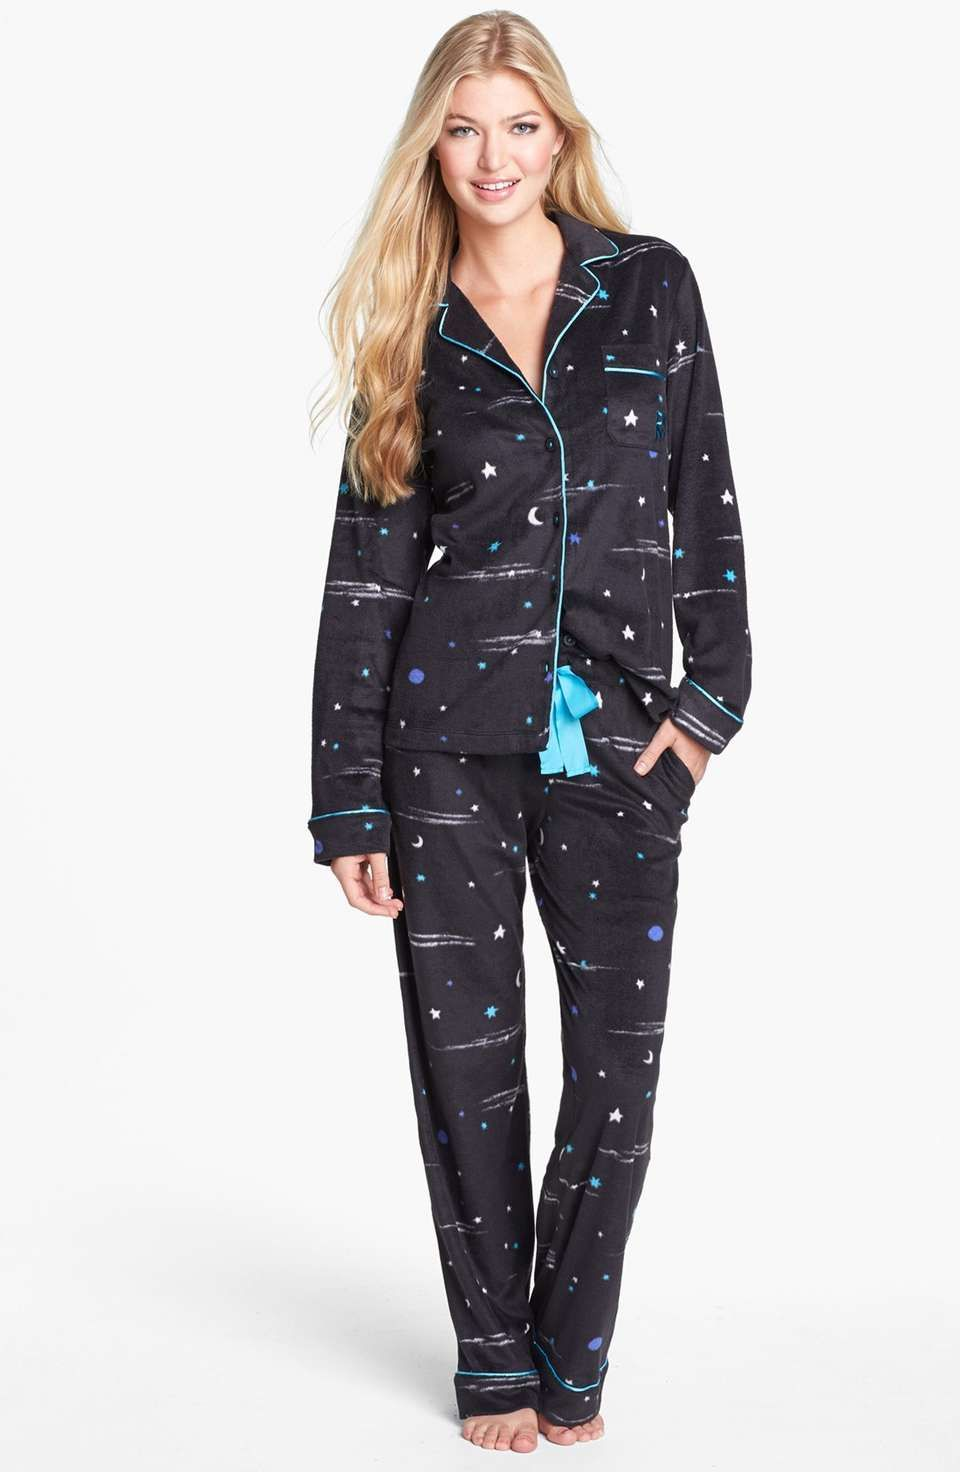 Wear Pajamas to Work Day Celebrated annually, Pajama Day is a holiday in which you spend the entire day wearing your pajamas. Also known as National Wear Your Pajamas to Work Day, this day celebrates the iconic sleepwear and gives us an excuse to spend our day in something super comfy.